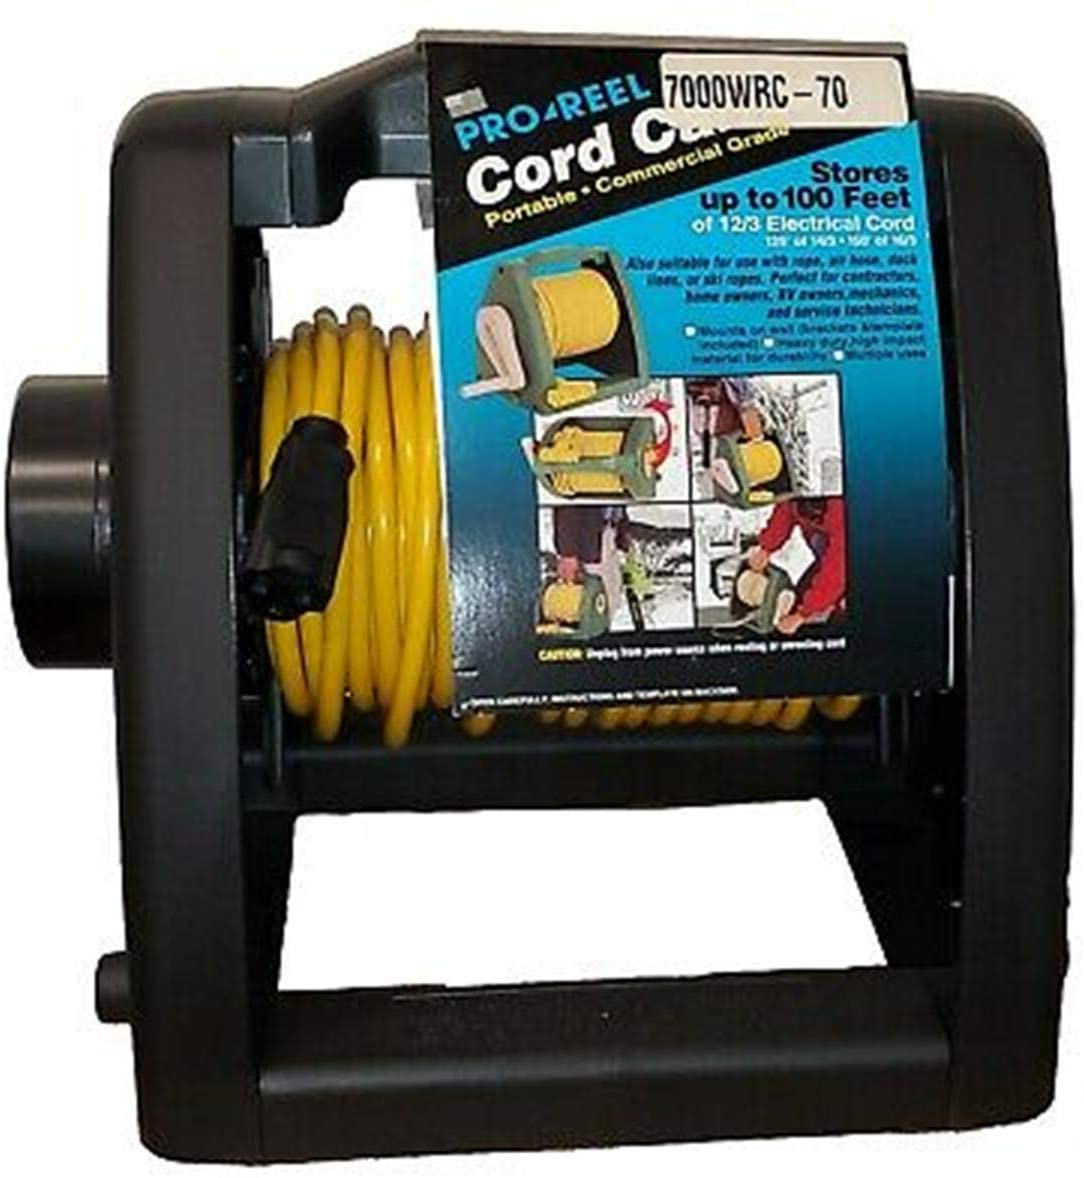 Manual Wind-Up Cord Storage Reel with 70 Ft 16/3 Cord Alert Stamping 7000WRC-70